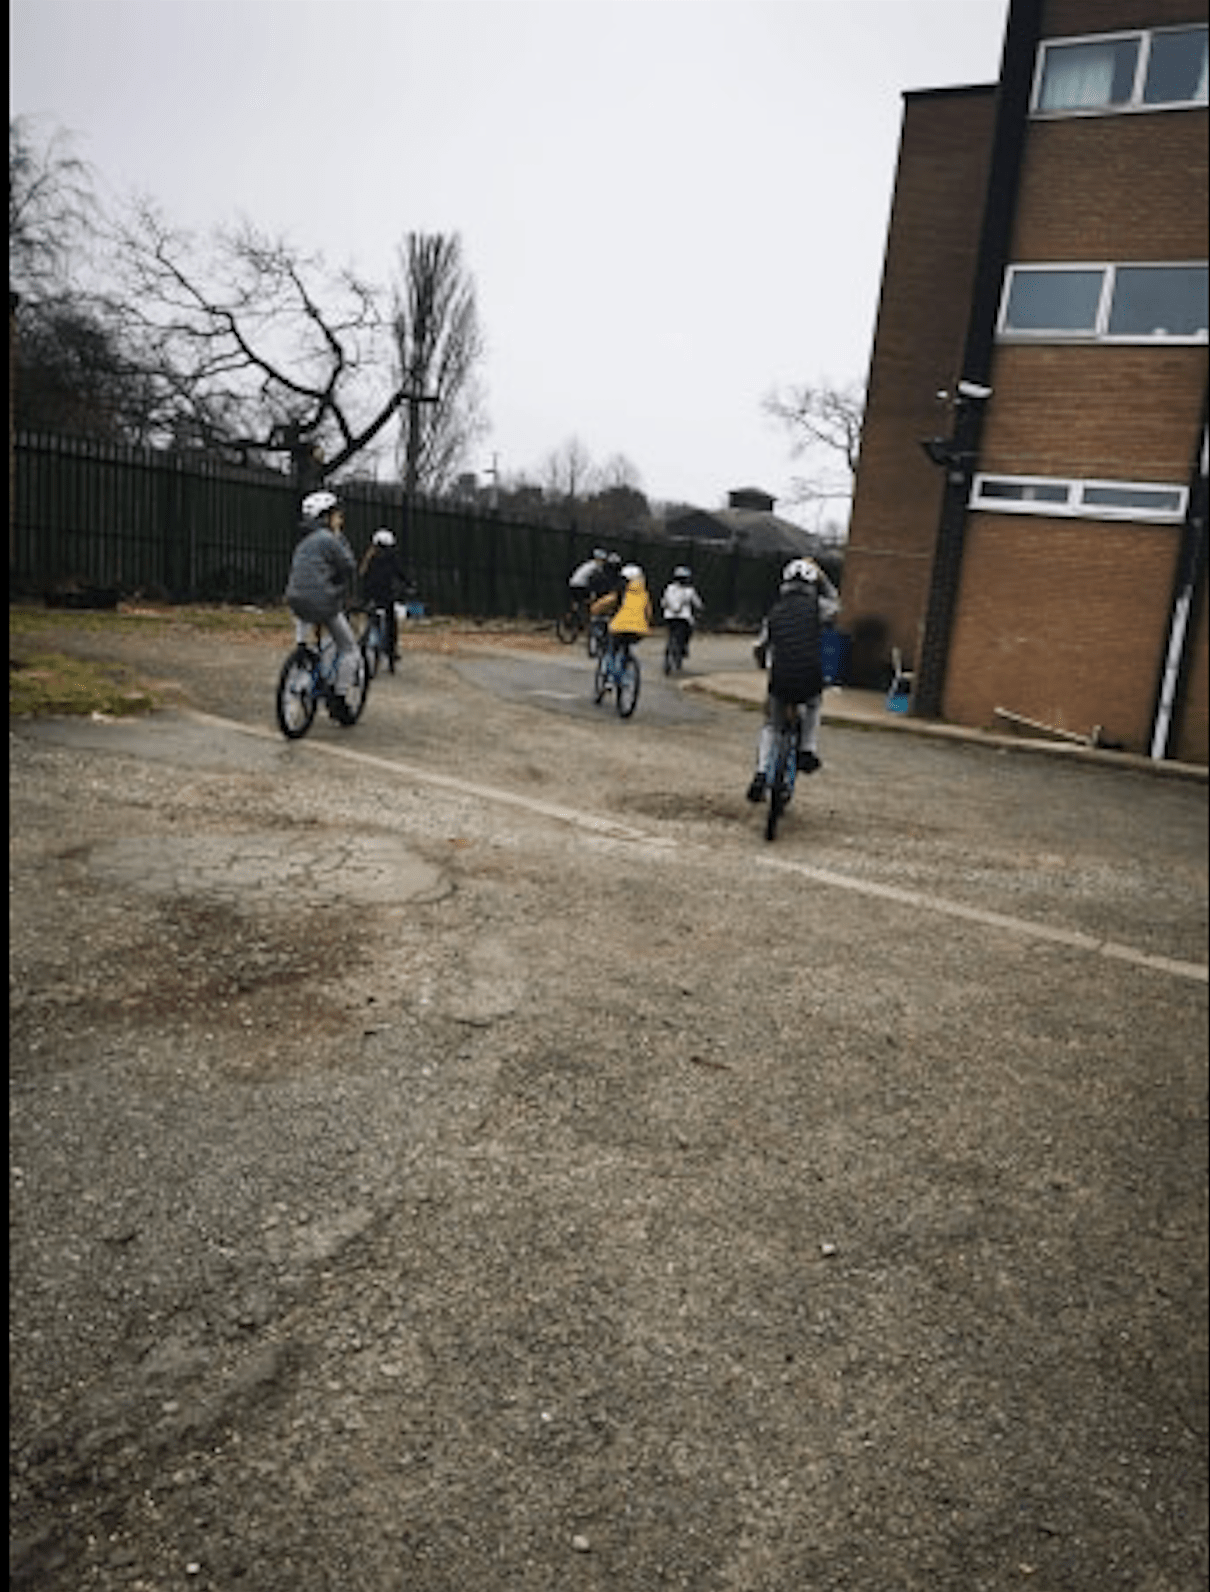 4 young people on bikes riding around a housing estate